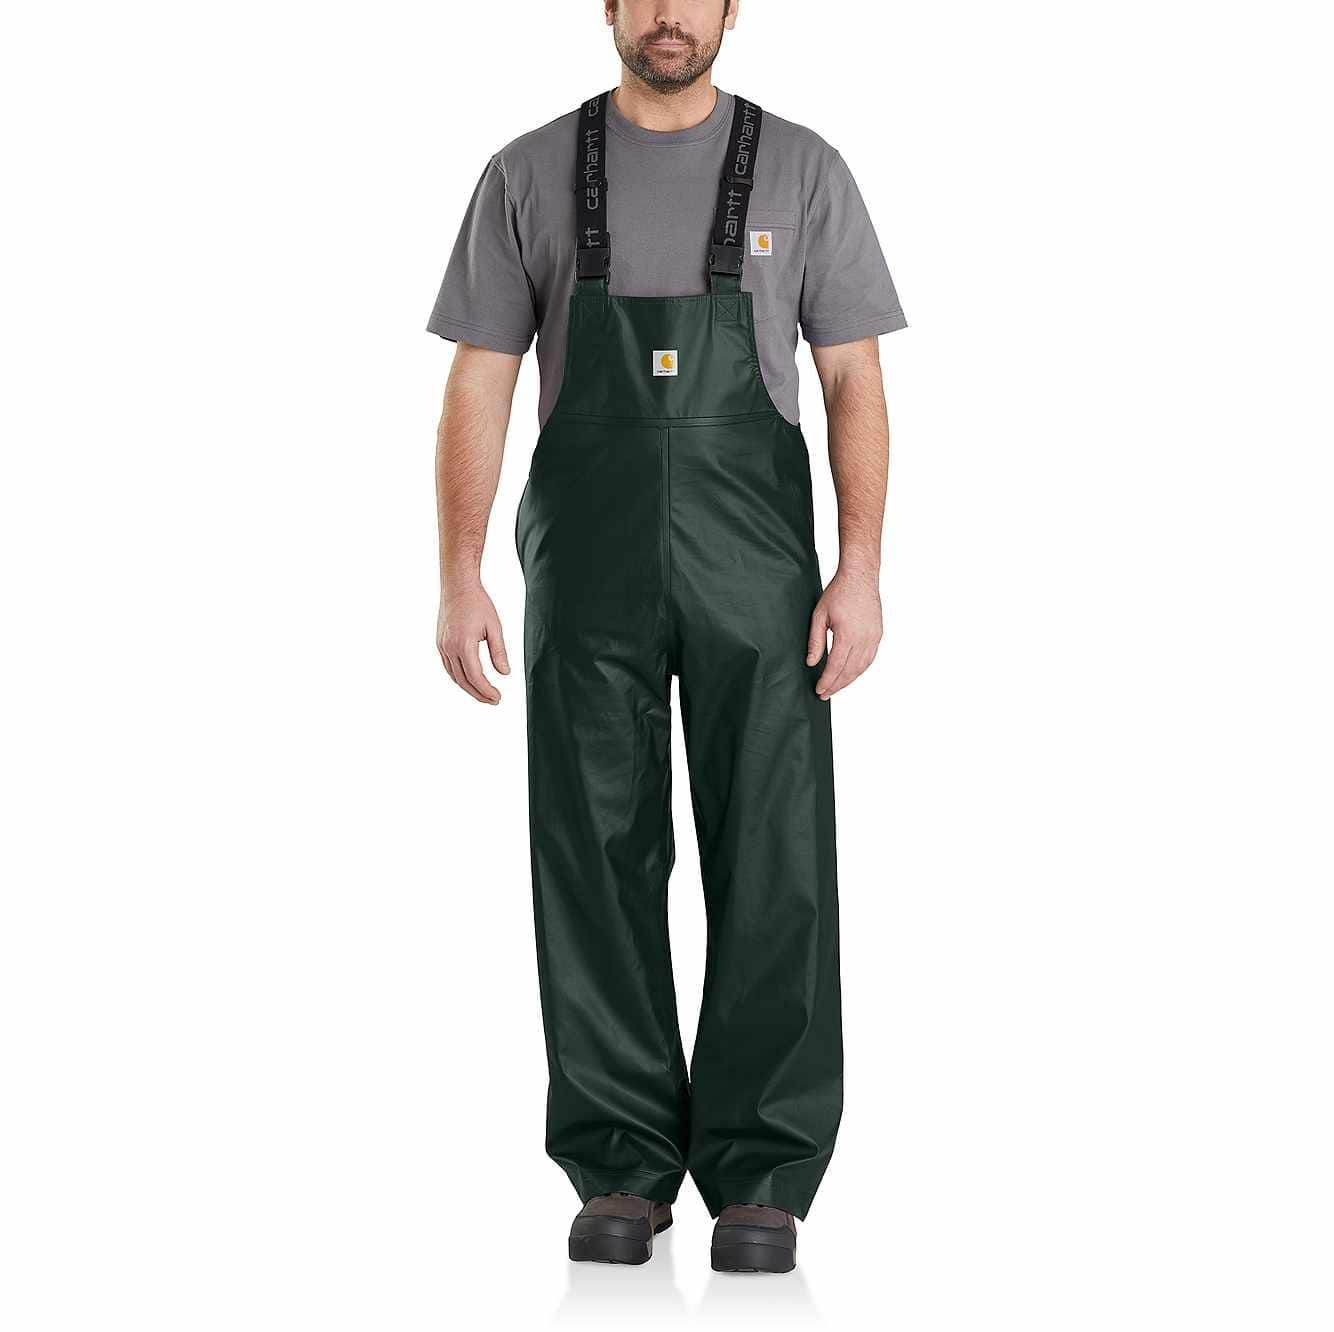 Picture of Lightweight Waterproof Rainstorm Bib Overalls in Canopy Green